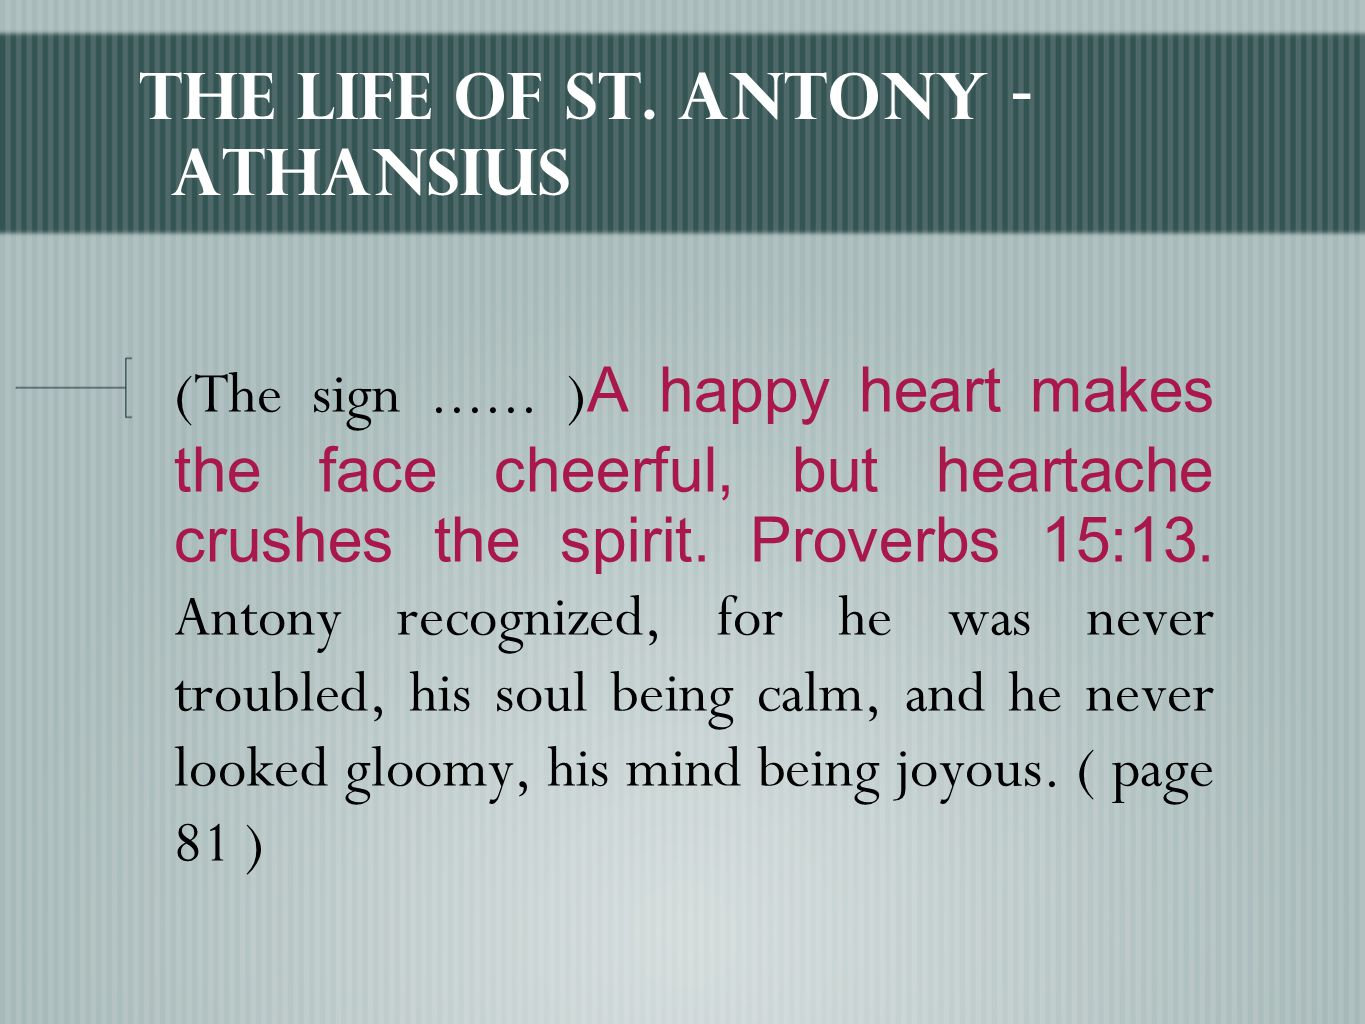 The Life of St. Antony - Athansius (The sign......